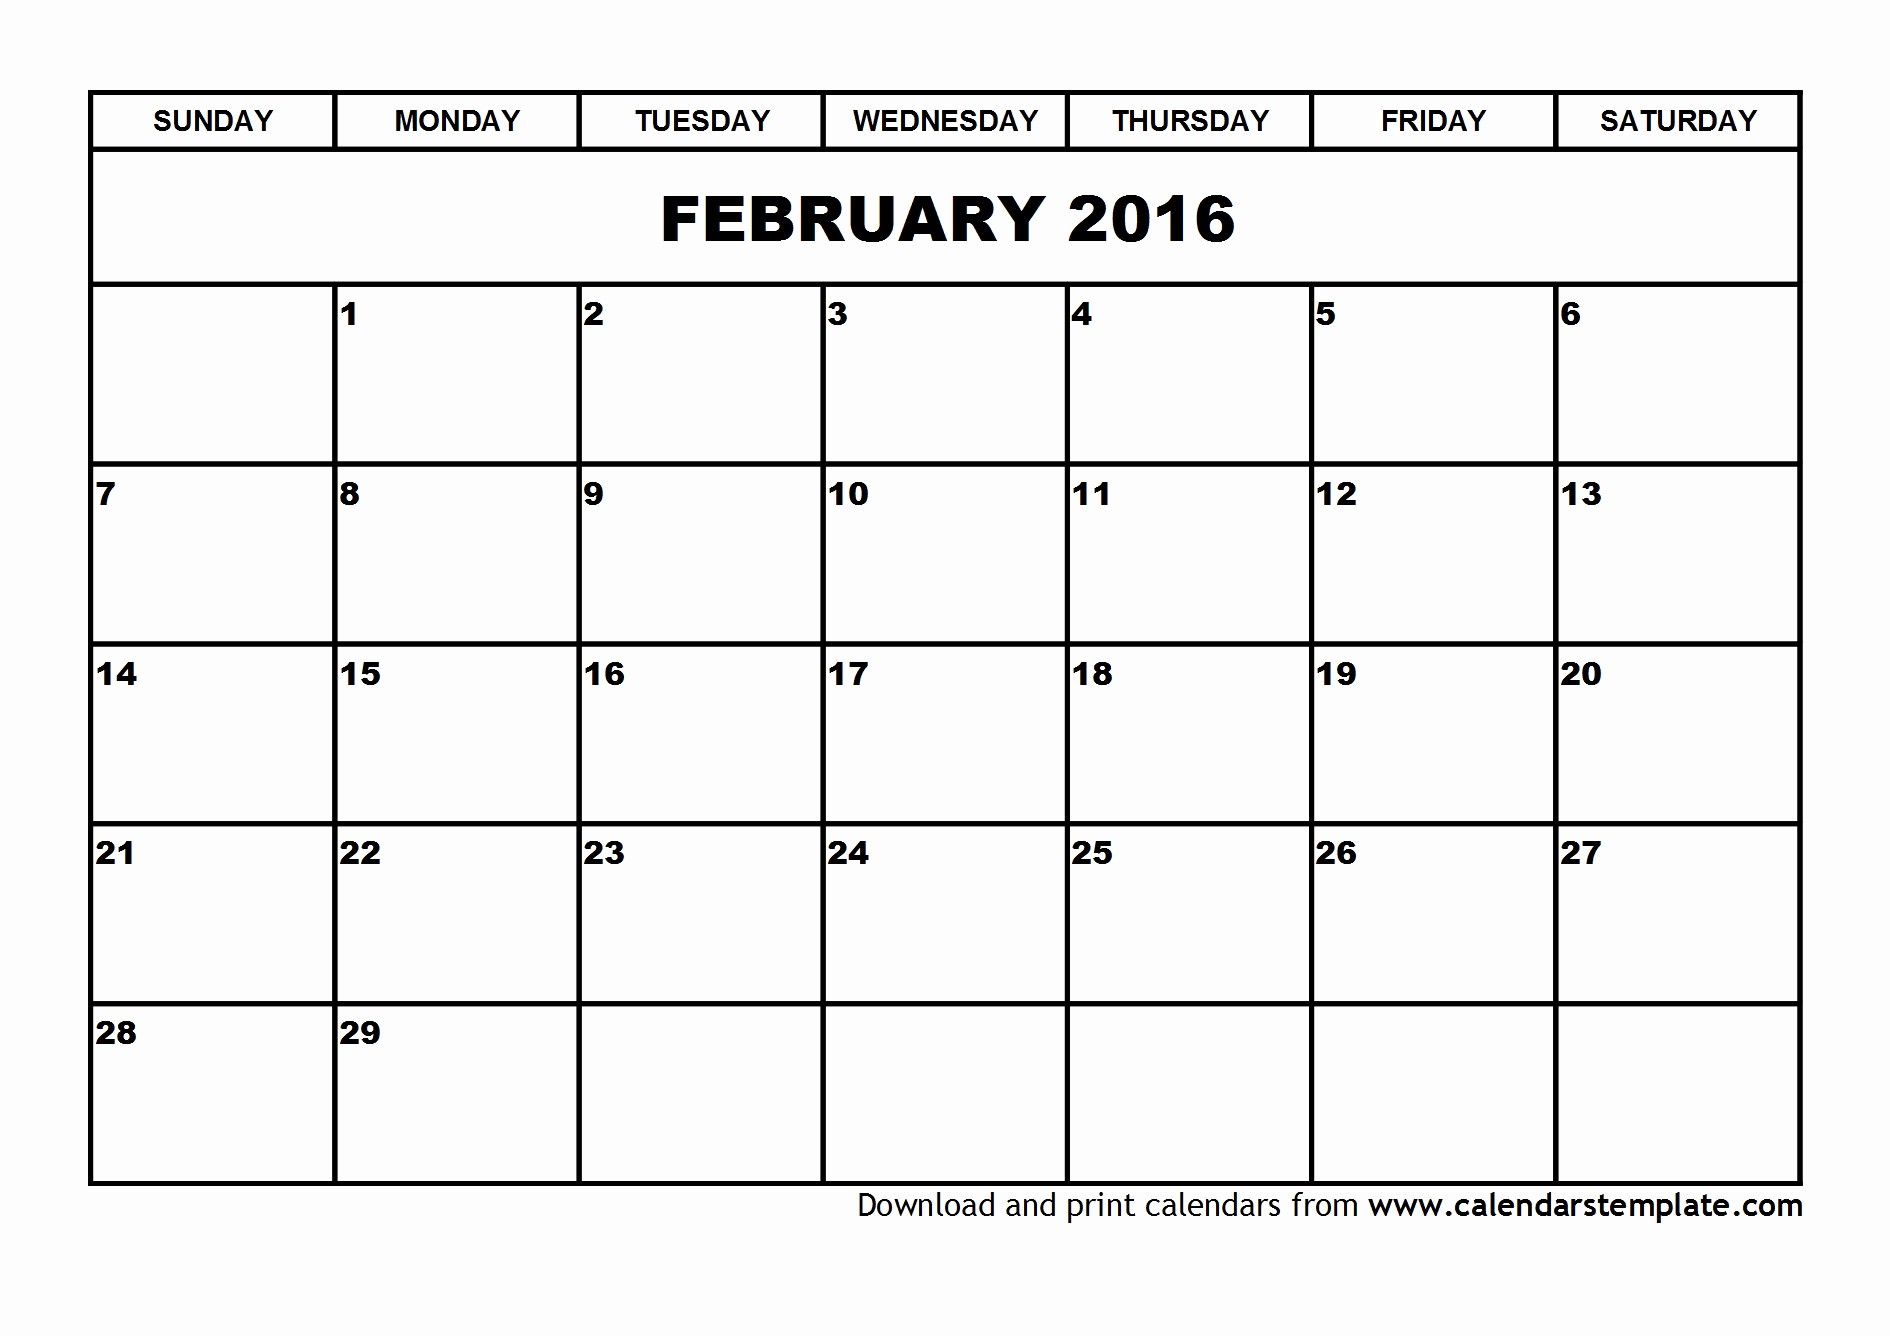 Free Printable Calendars 2016 Templates Luxury February 2016 Calendar Template